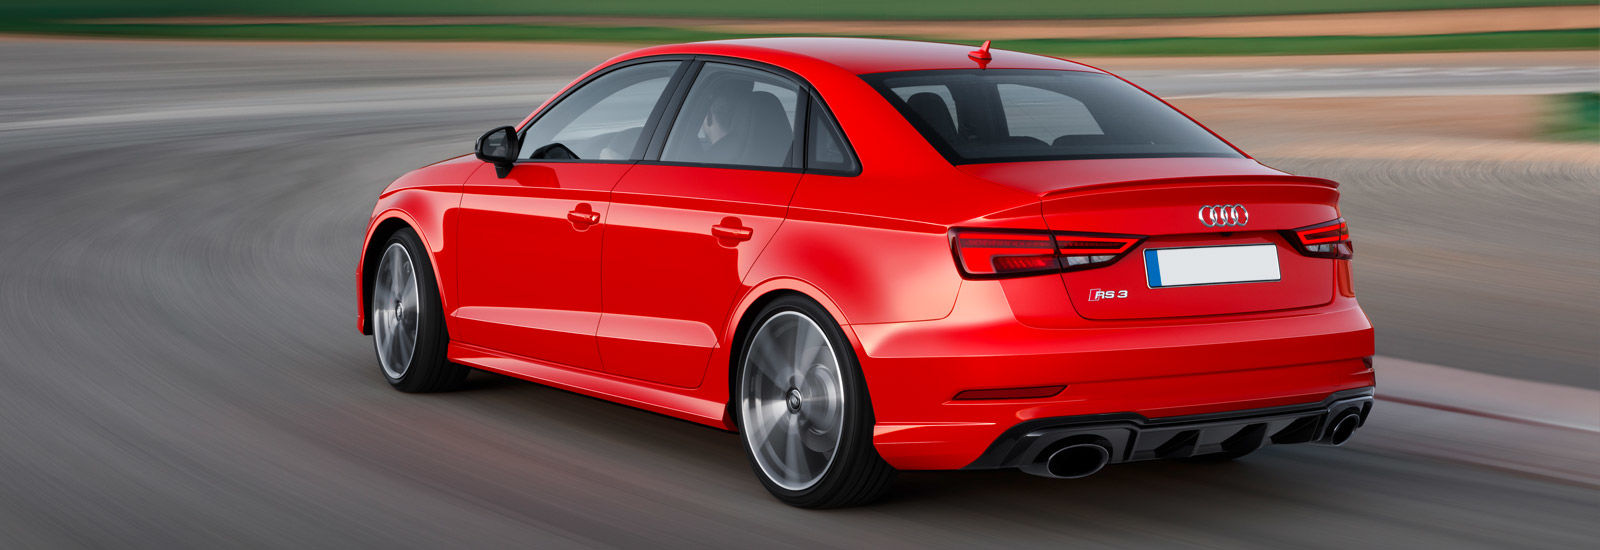 New Audi RS Saloon Price Specs Release Date Carwow - Audi image and price